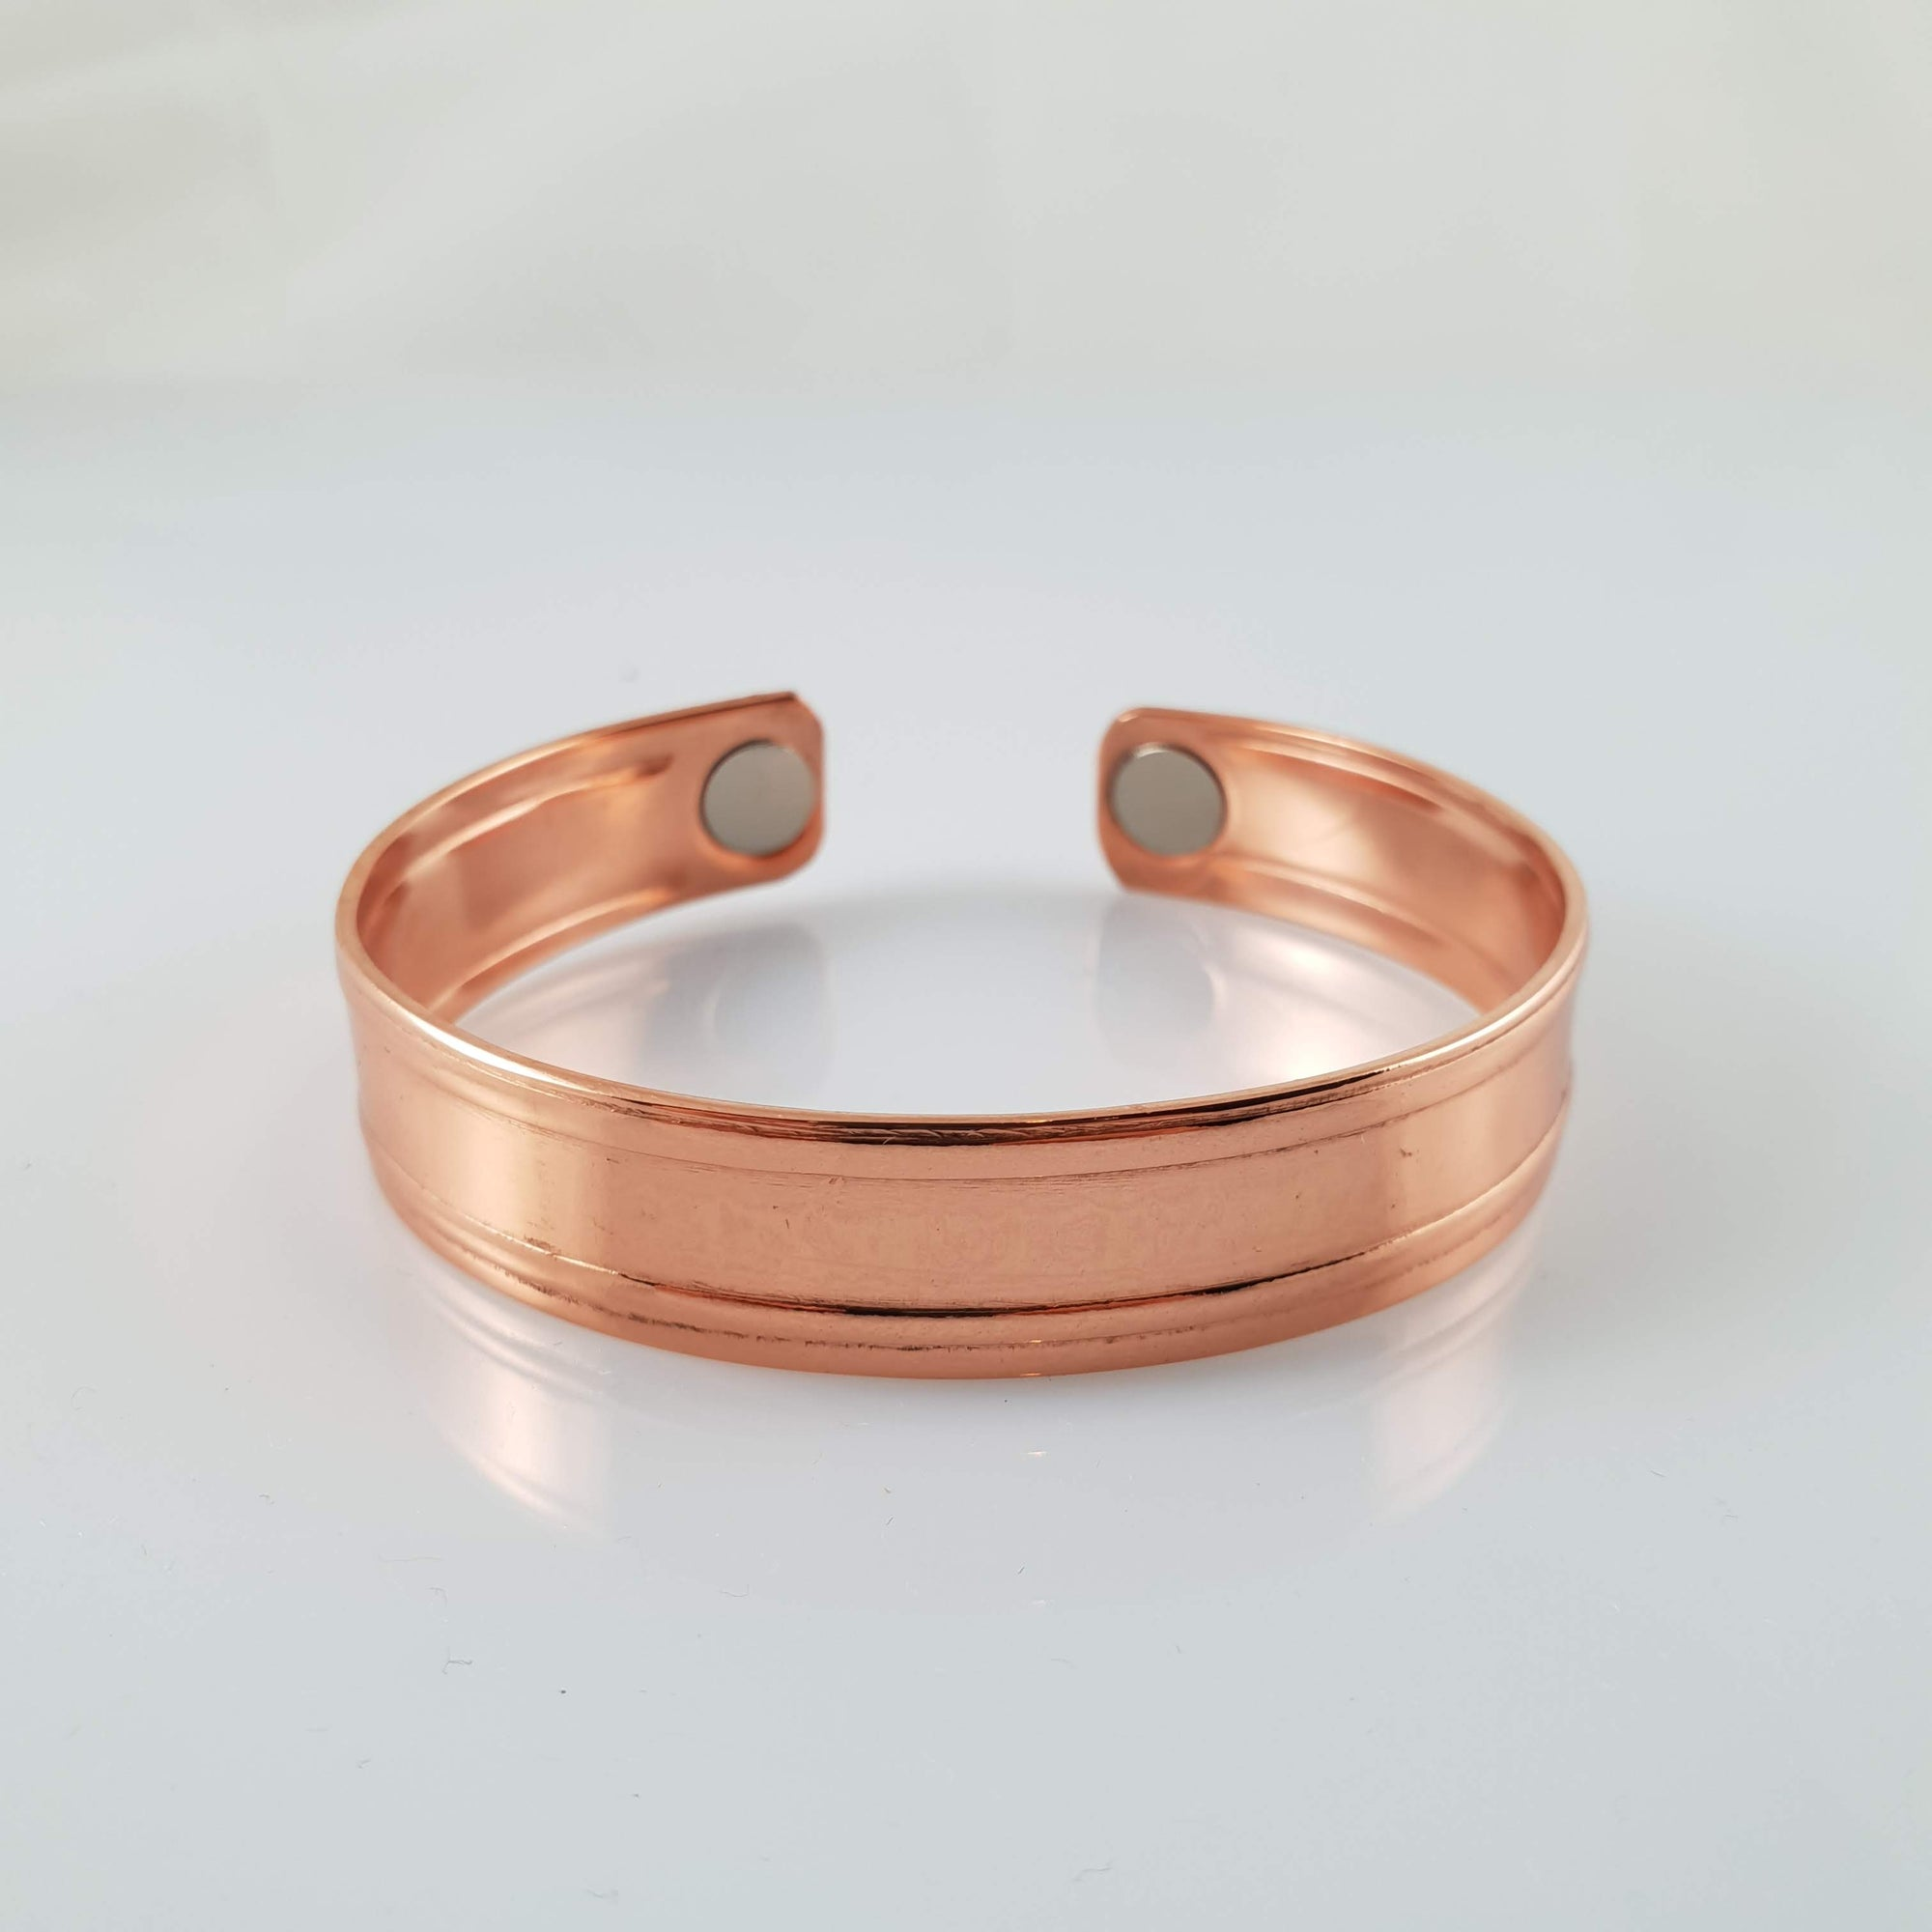 Handmade NZ Pure Copper Bracelet with Stripe - Rivendell Shop